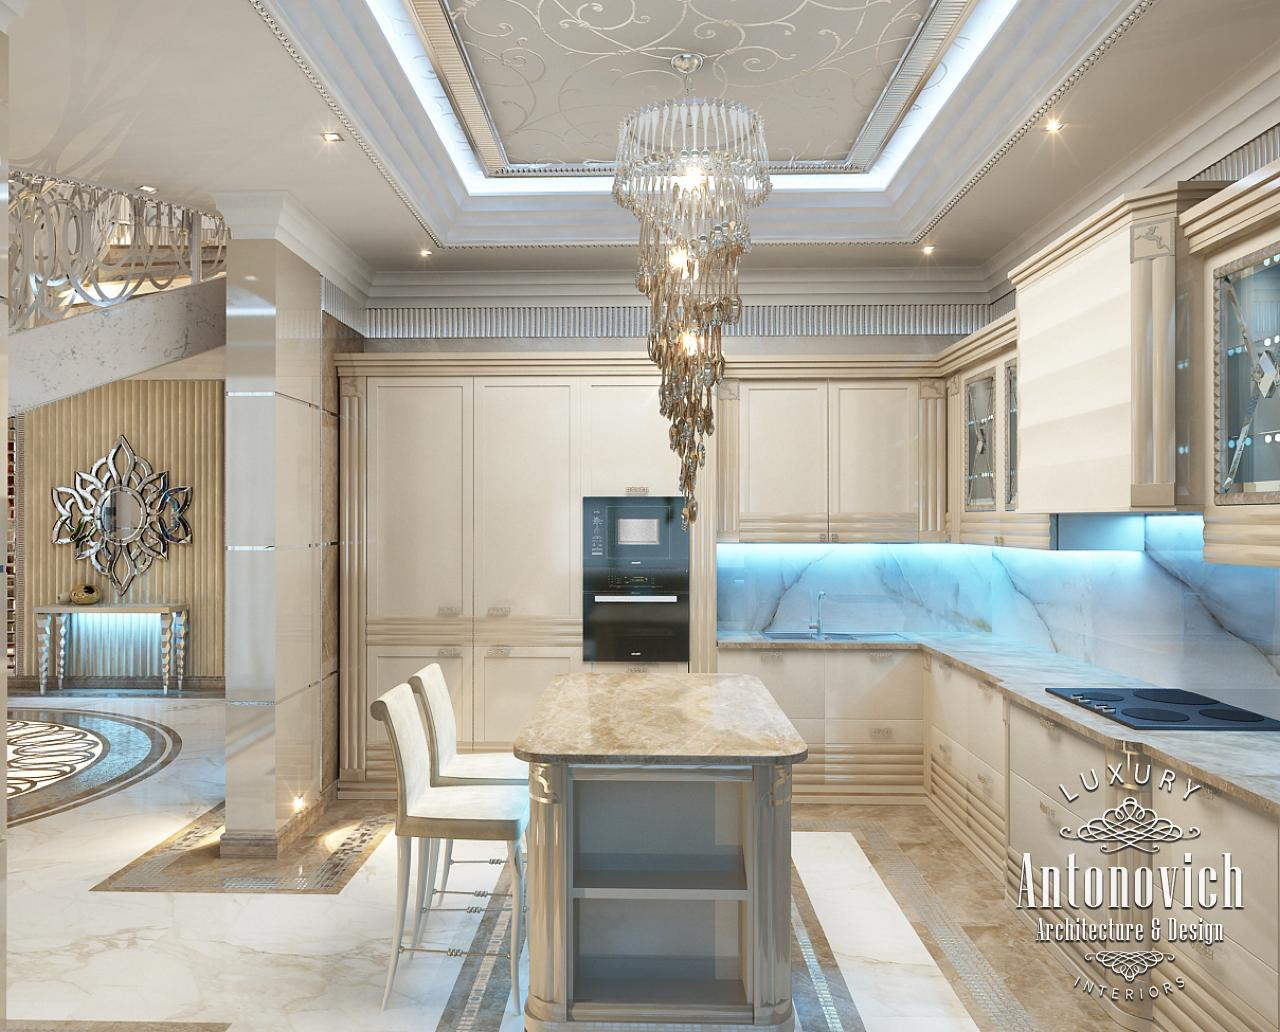 Luxury antonovich design uae luxury interior design dubai for Pictures of interior designs